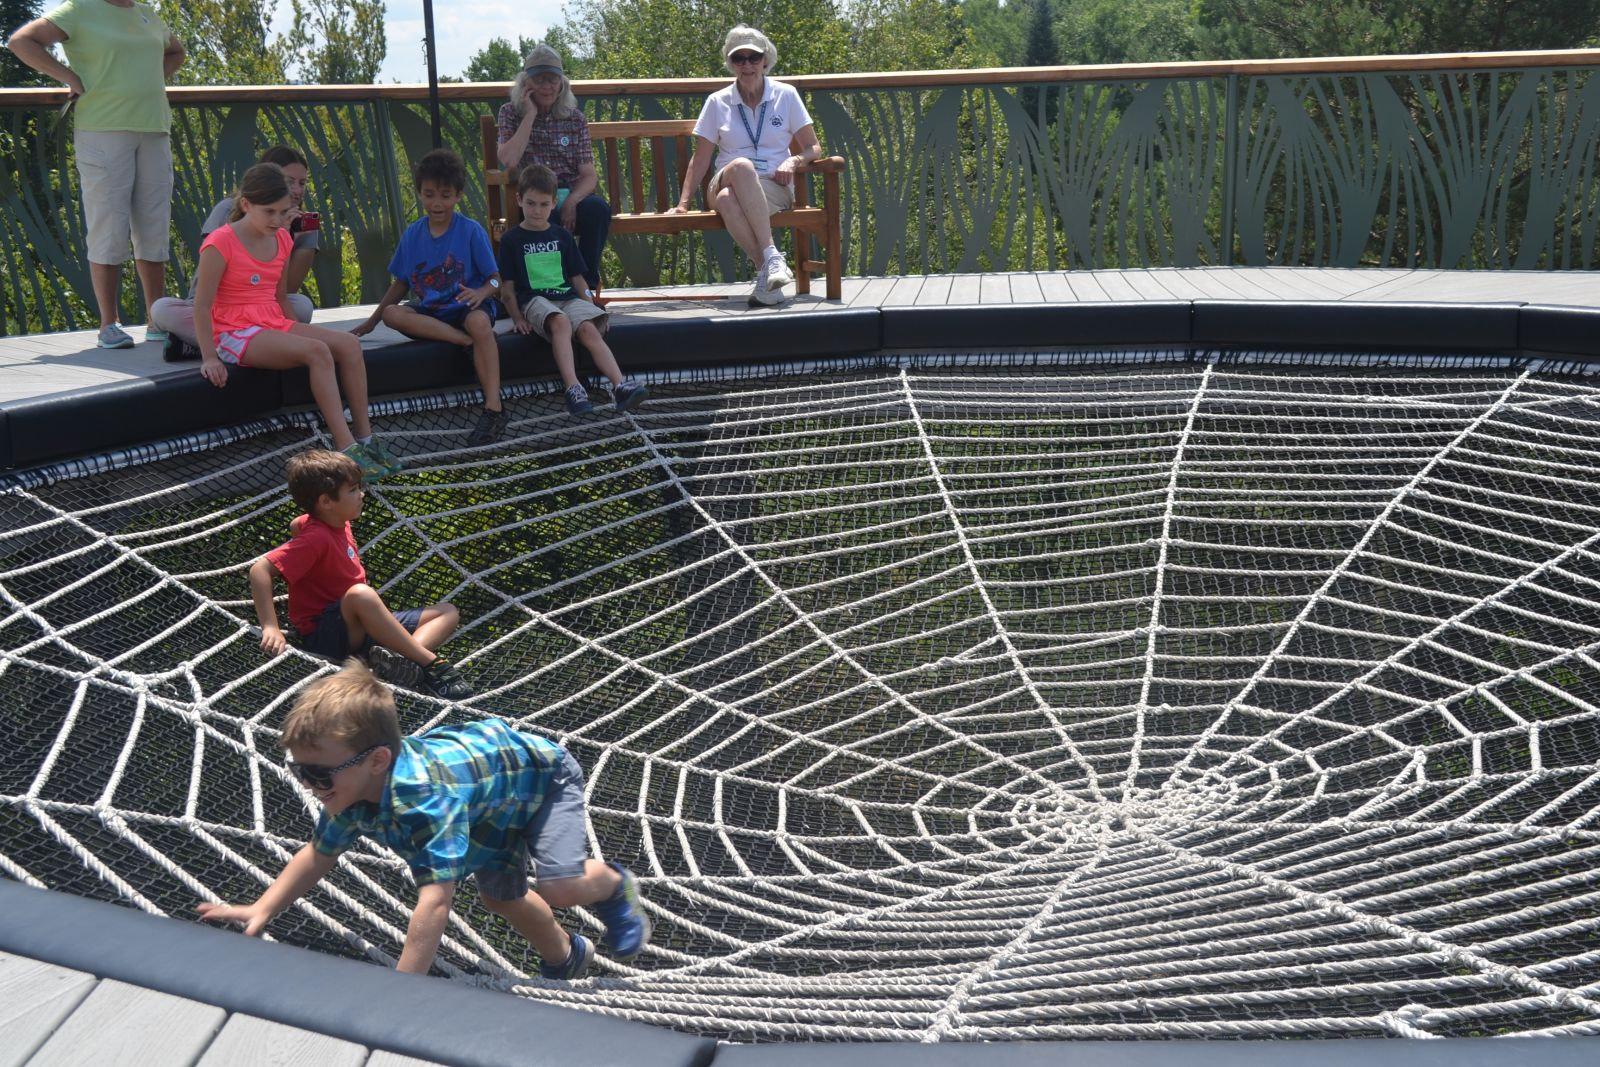 Check out the Spider Web on the Wild Walk!